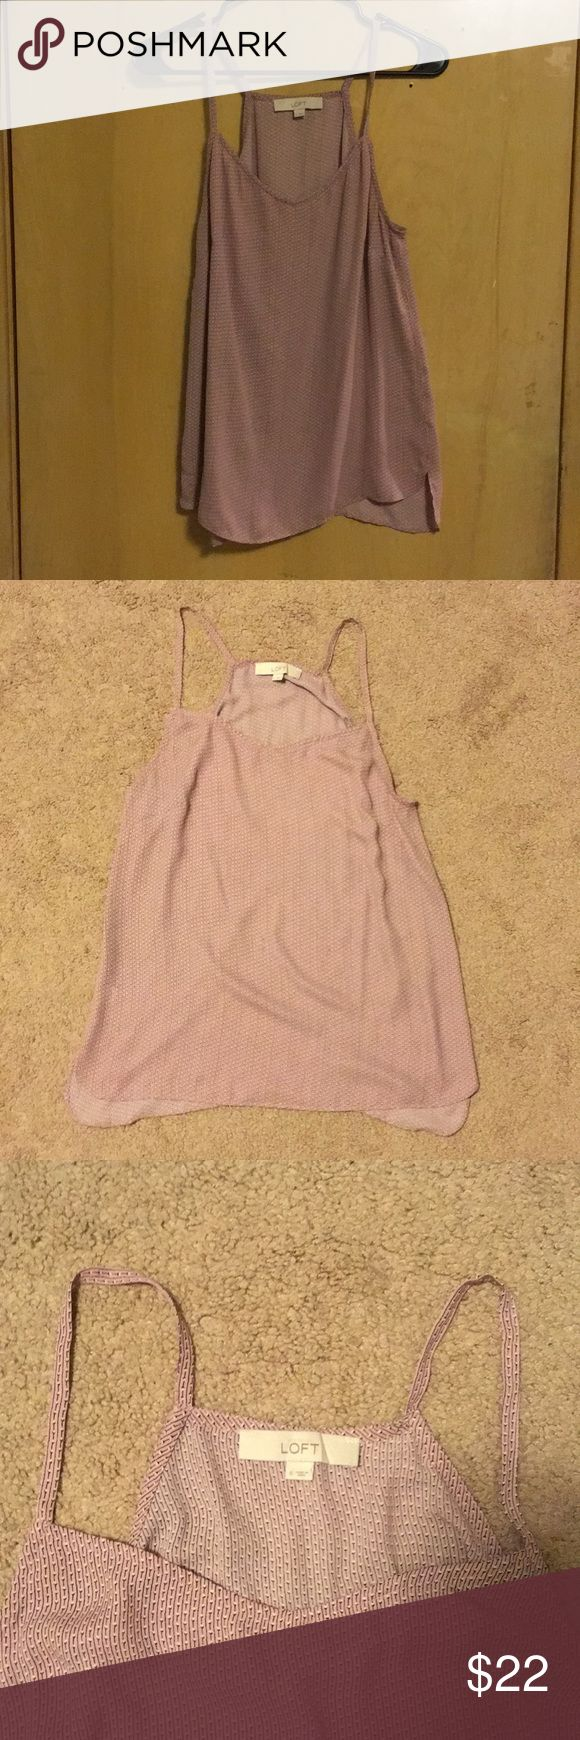 Loft tank blouse This light pink patterned loft tank is great for formal and informal attire. LOFT Tops Tank Tops